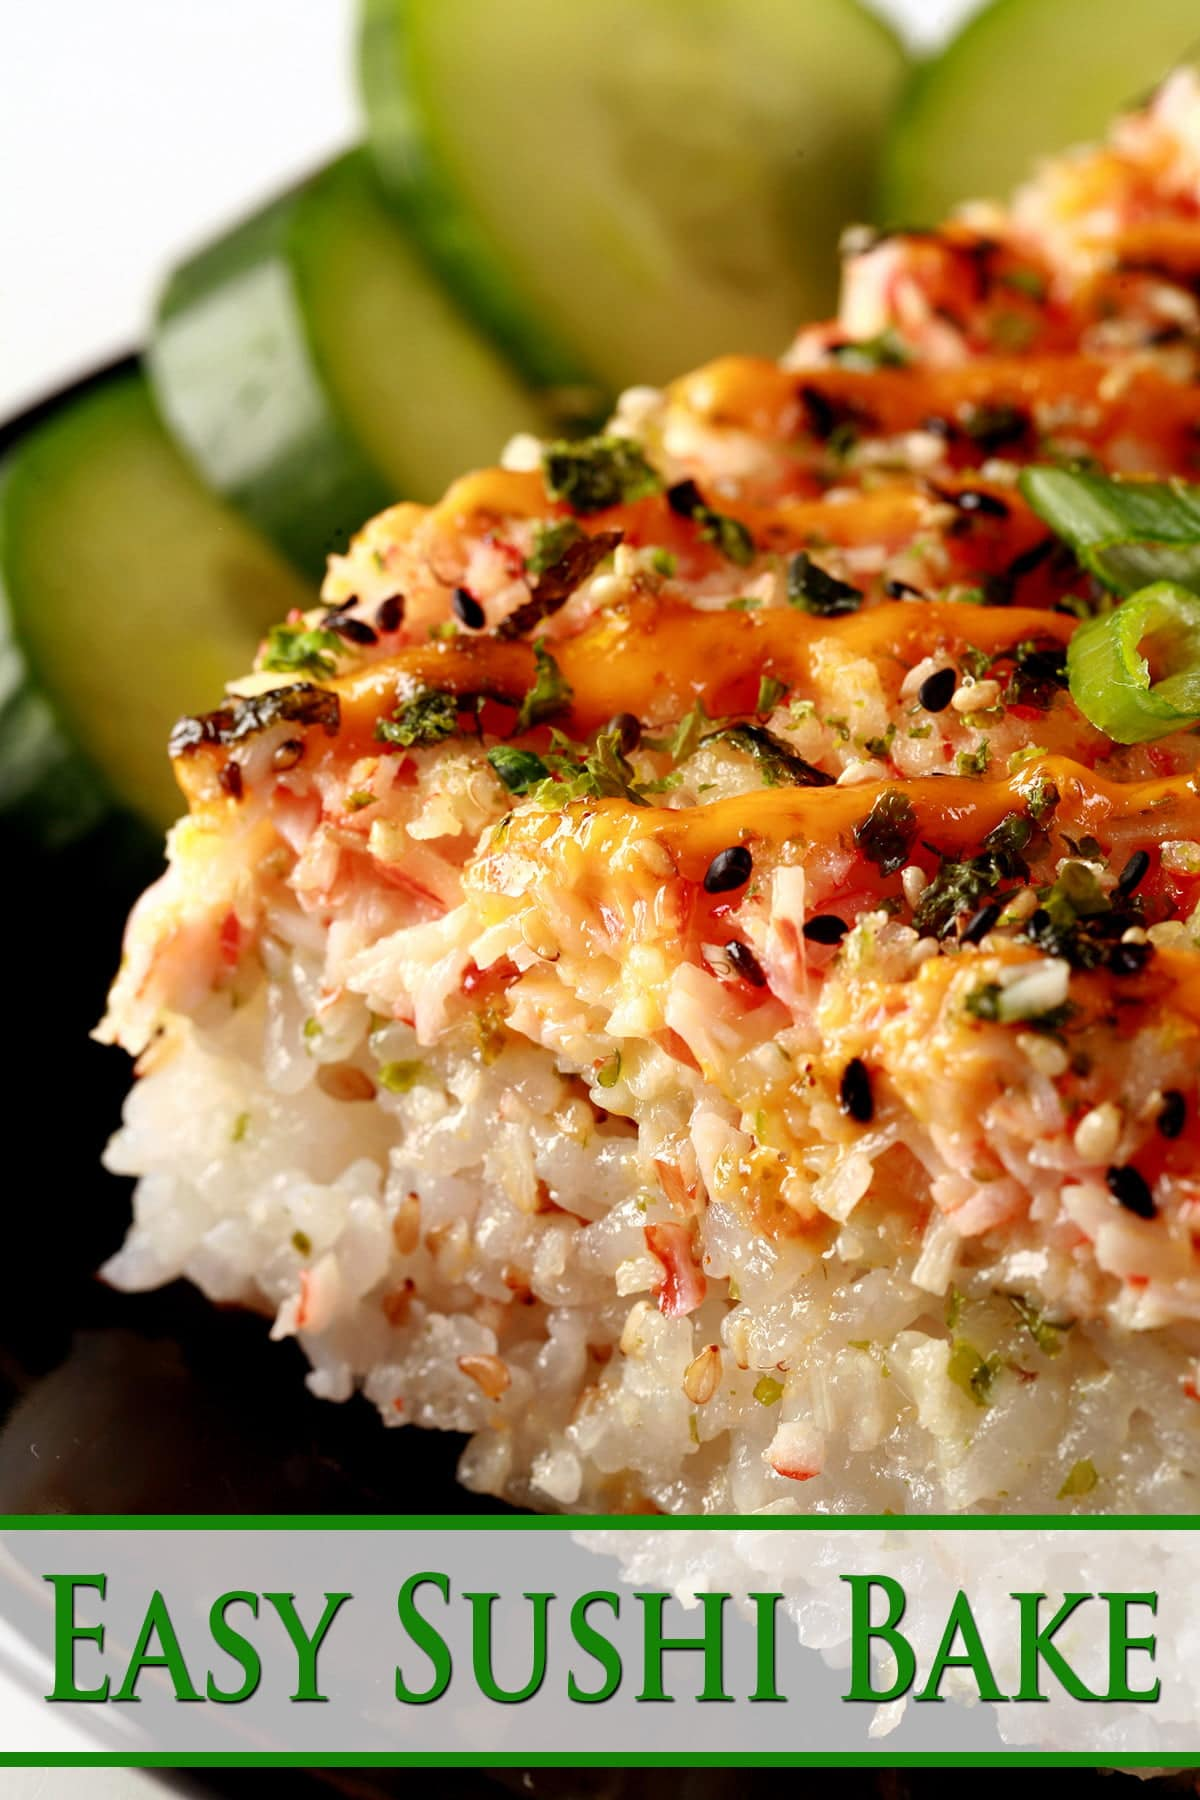 A close up view of a square serving of sushi casserole - sushi rice, furikake, and a spicy imitation crab topping.